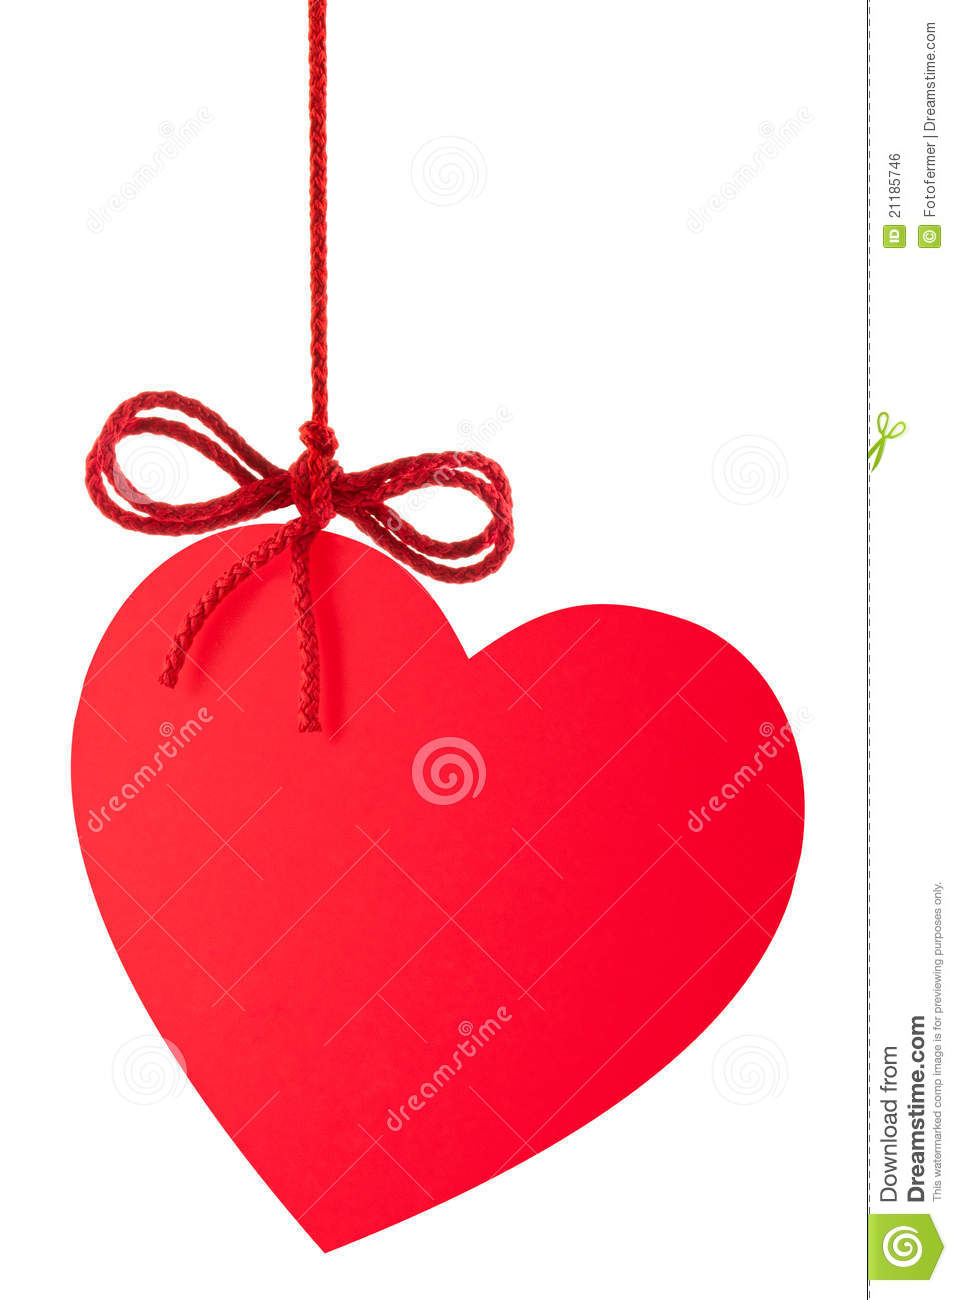 Heart-Valentine with a bow hanging on a rope